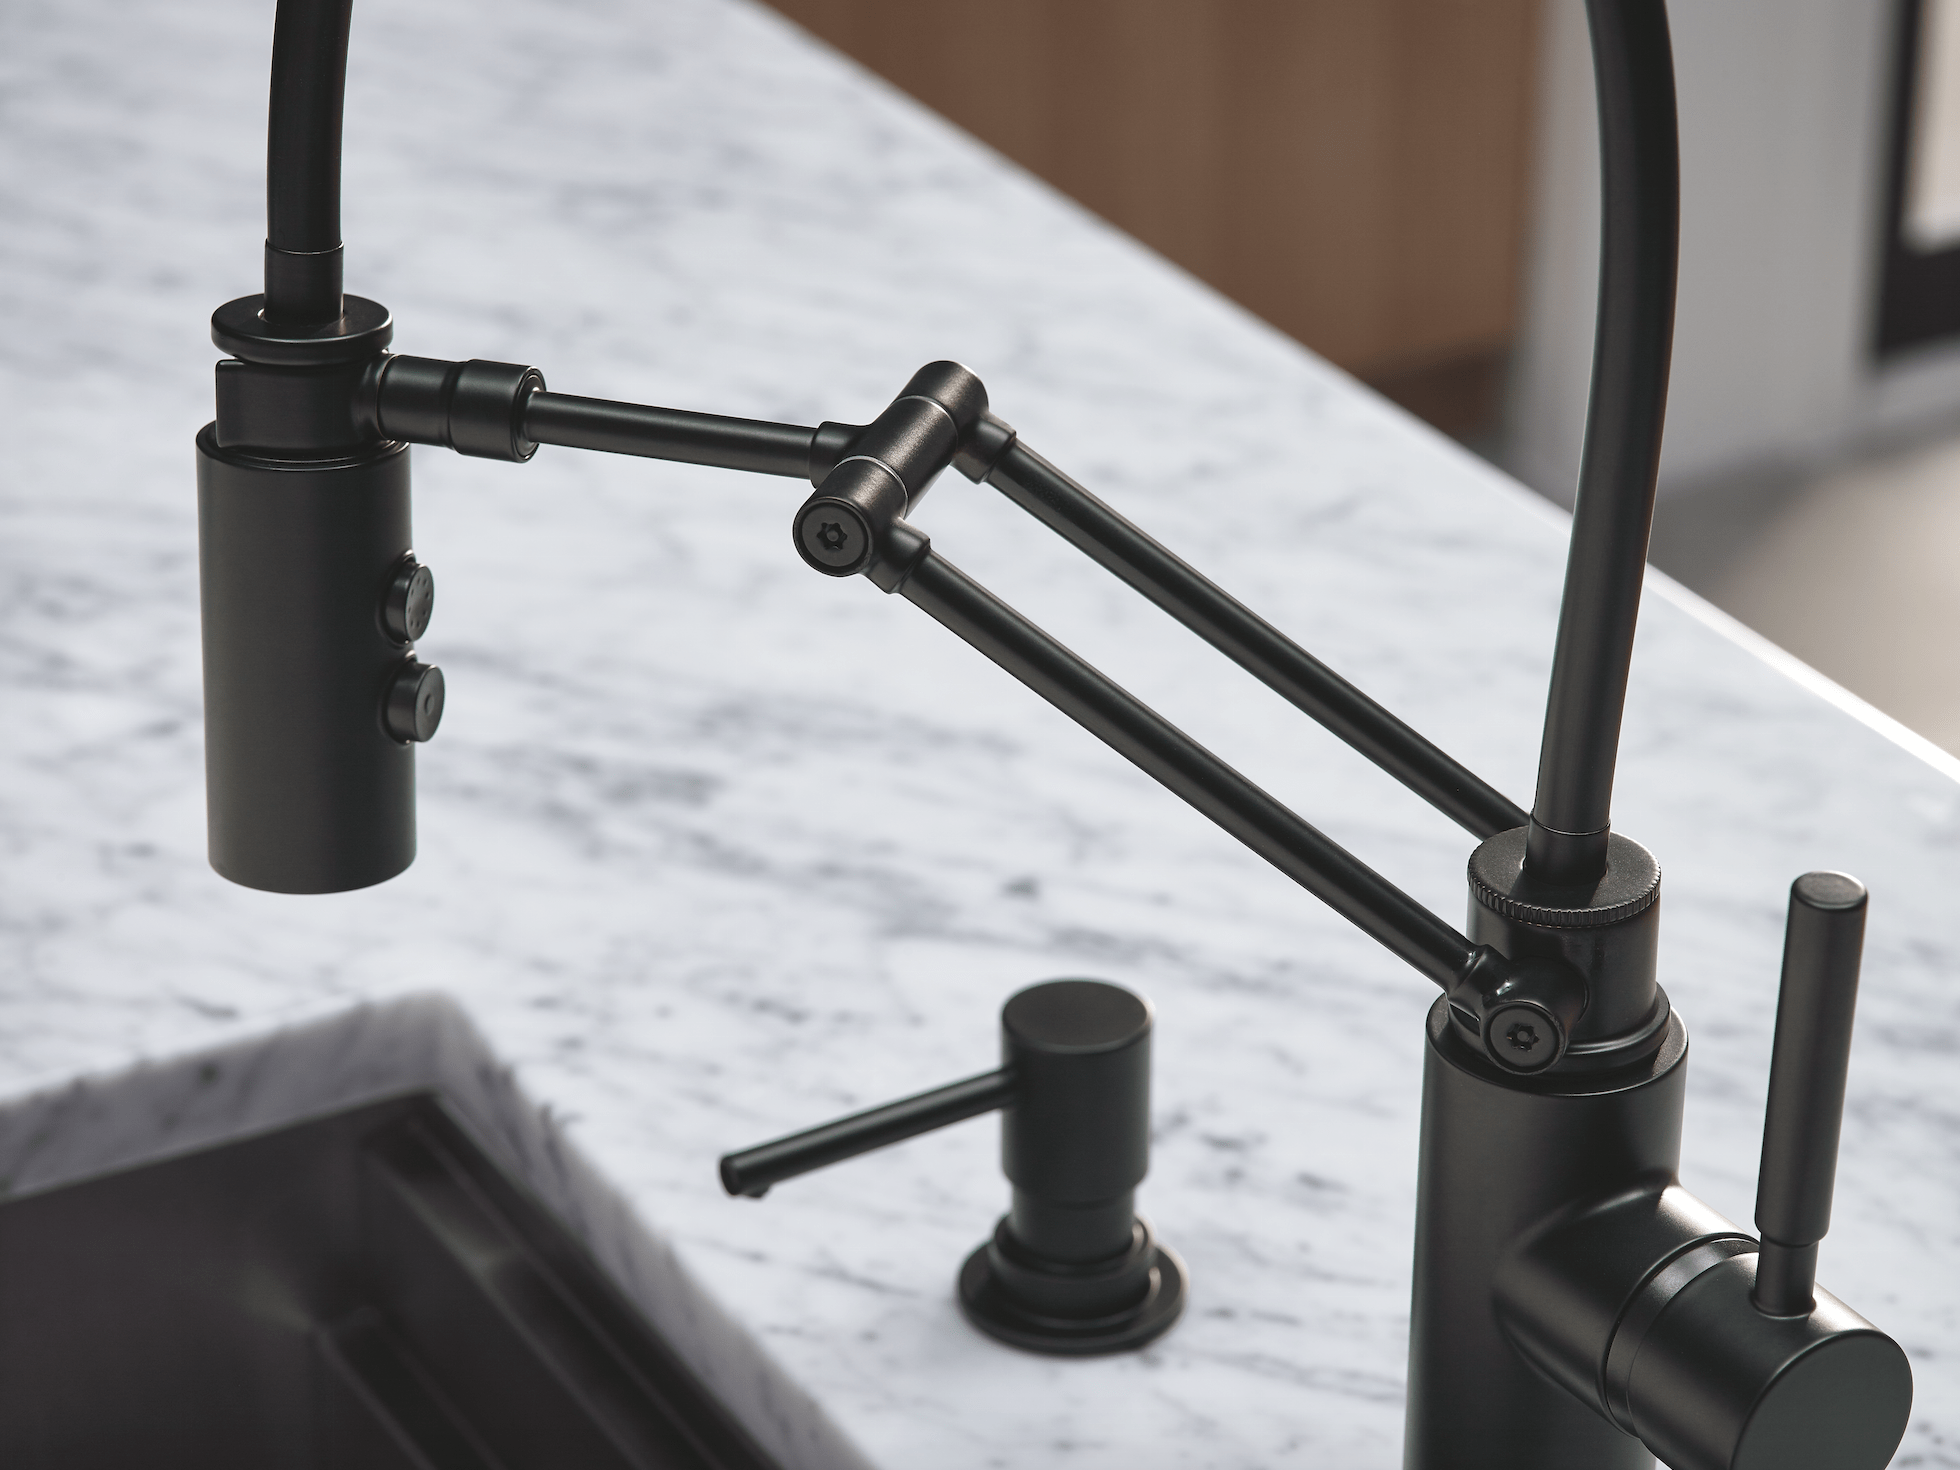 kitchen spaces black kitchen faucet The Solna Articulating Kitchen Faucet by Brizo in matte black was the hero in this modern kitchen space designed by